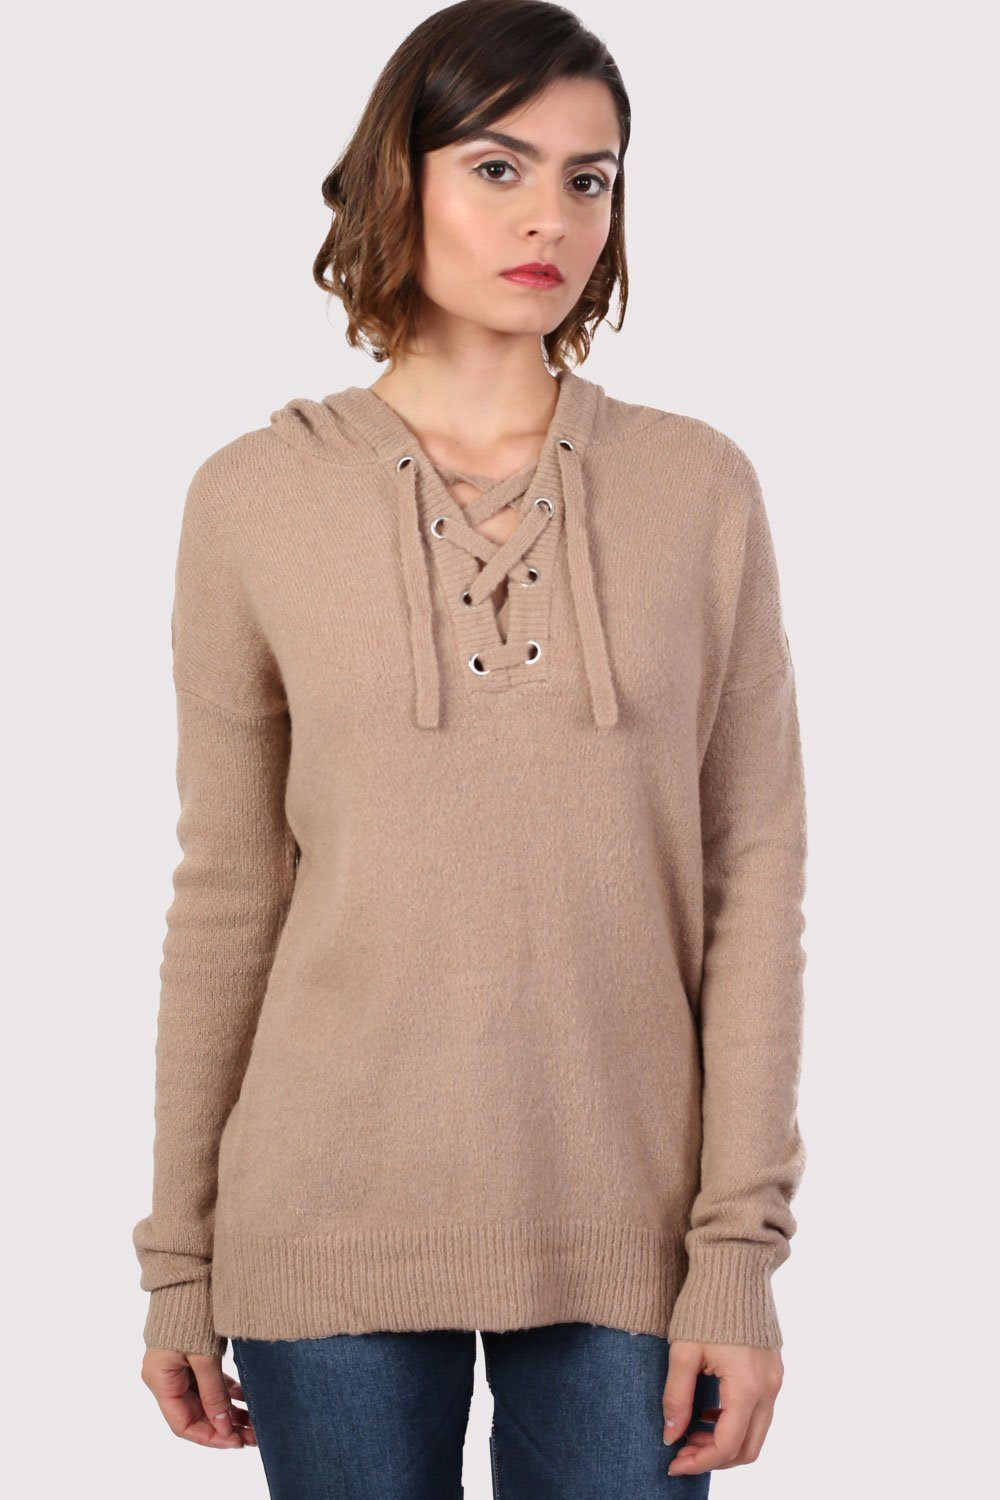 Lace Up Front Hooded Jumper in Camel Brown 0